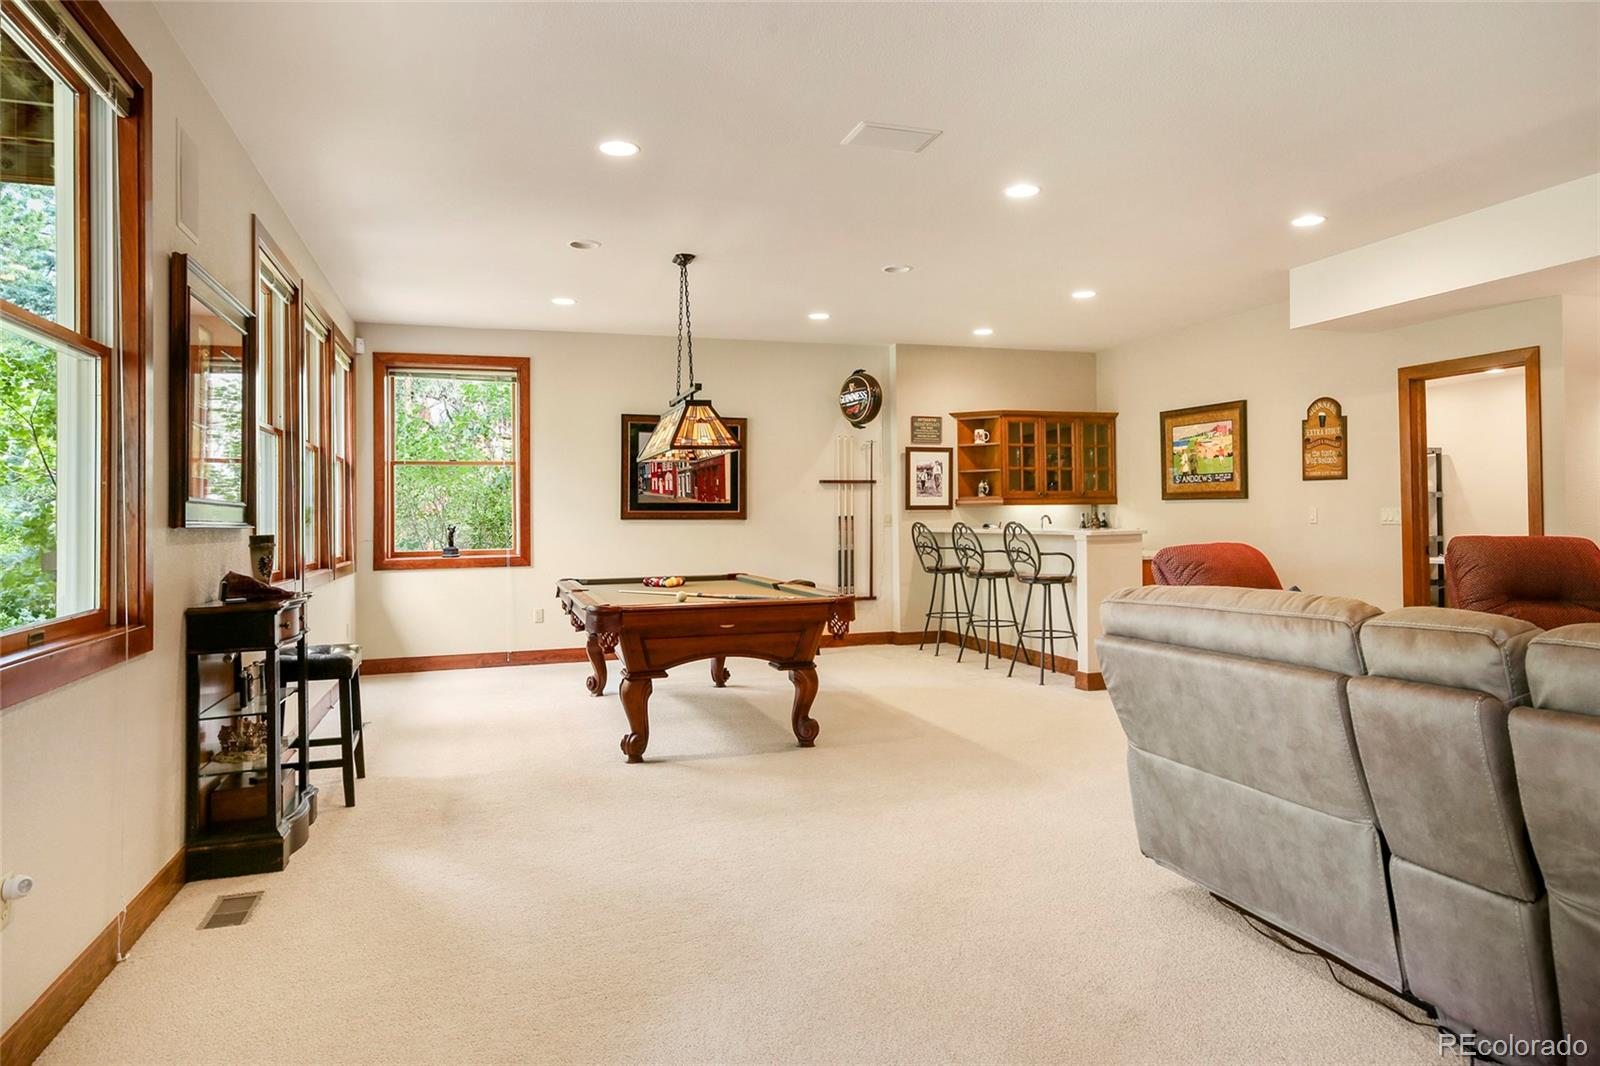 MLS# 8150320 - 25 - 1198 Forest Trails Drive, Castle Pines, CO 80108